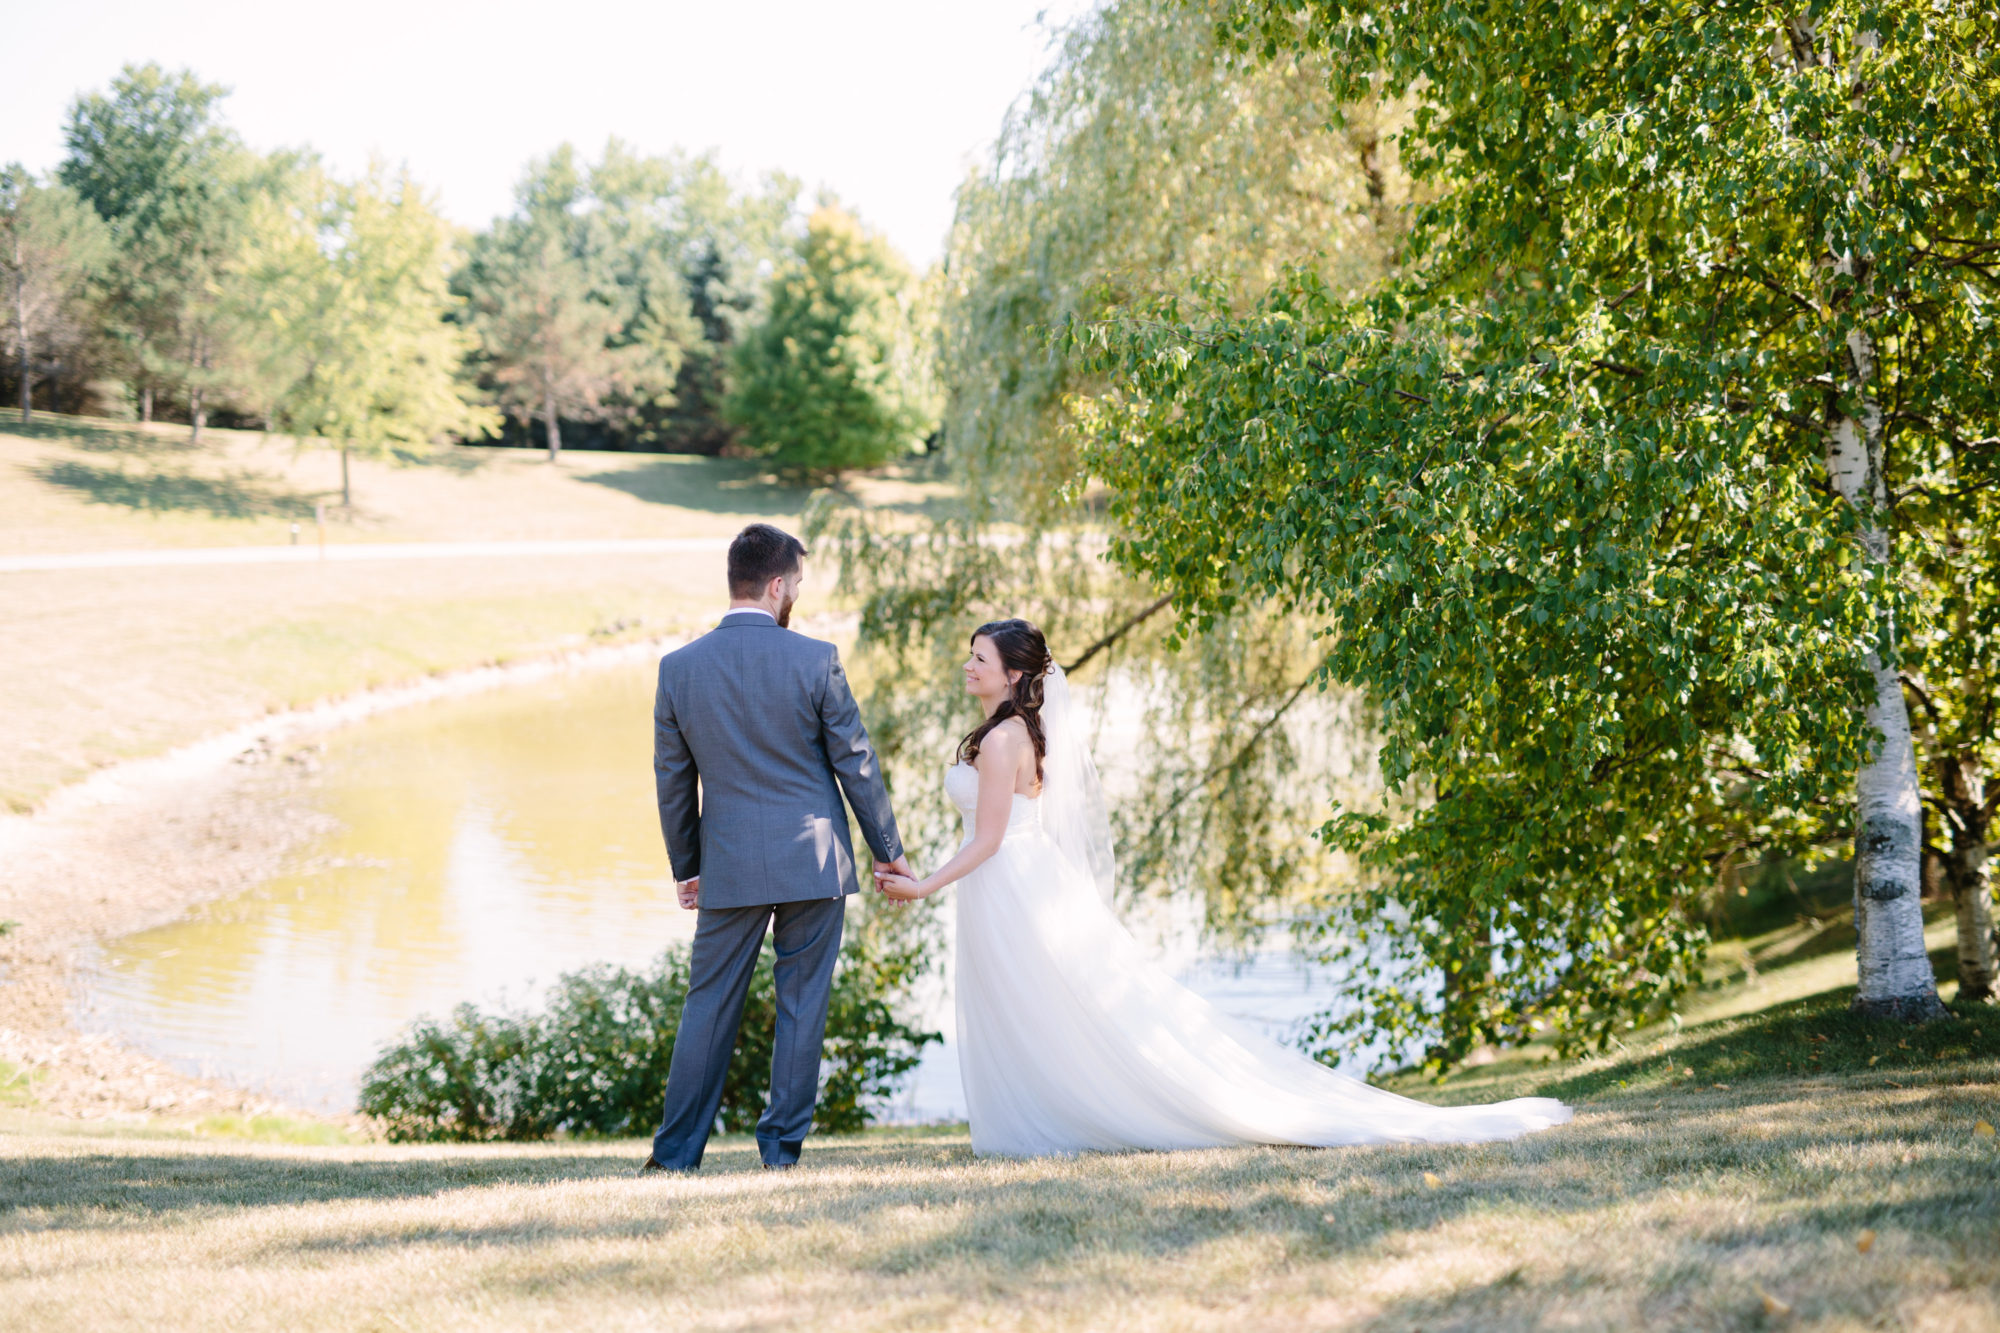 Pond Bride Groom Wedding King City Zsuzsi Pal Photography